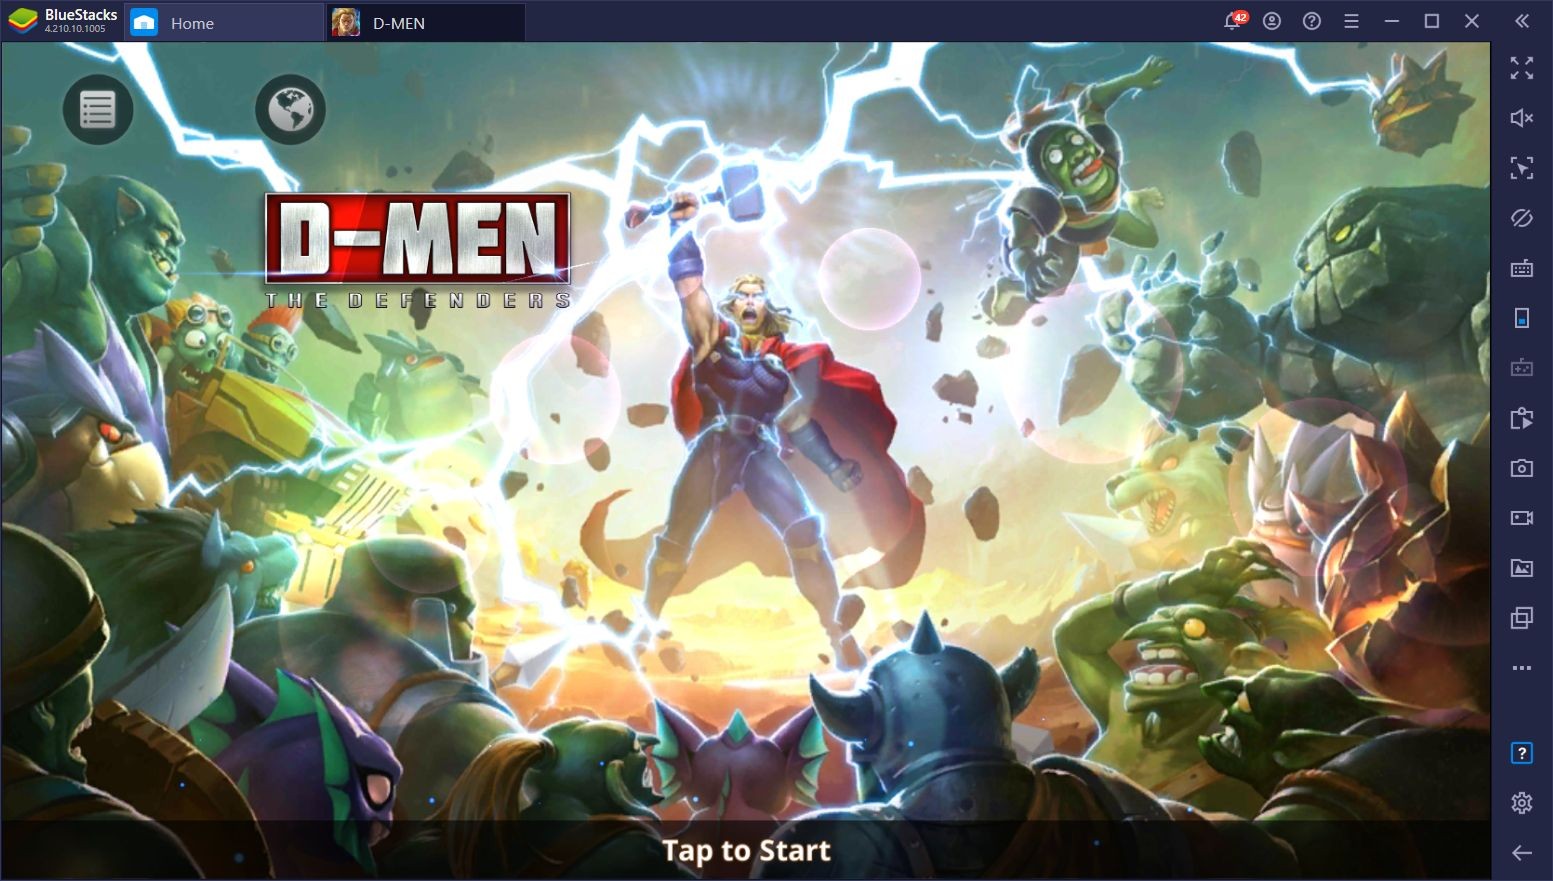 D-Men: The Defenders on PC – How to Use Our BlueStacks Tools to Win in This Tower Defense Game